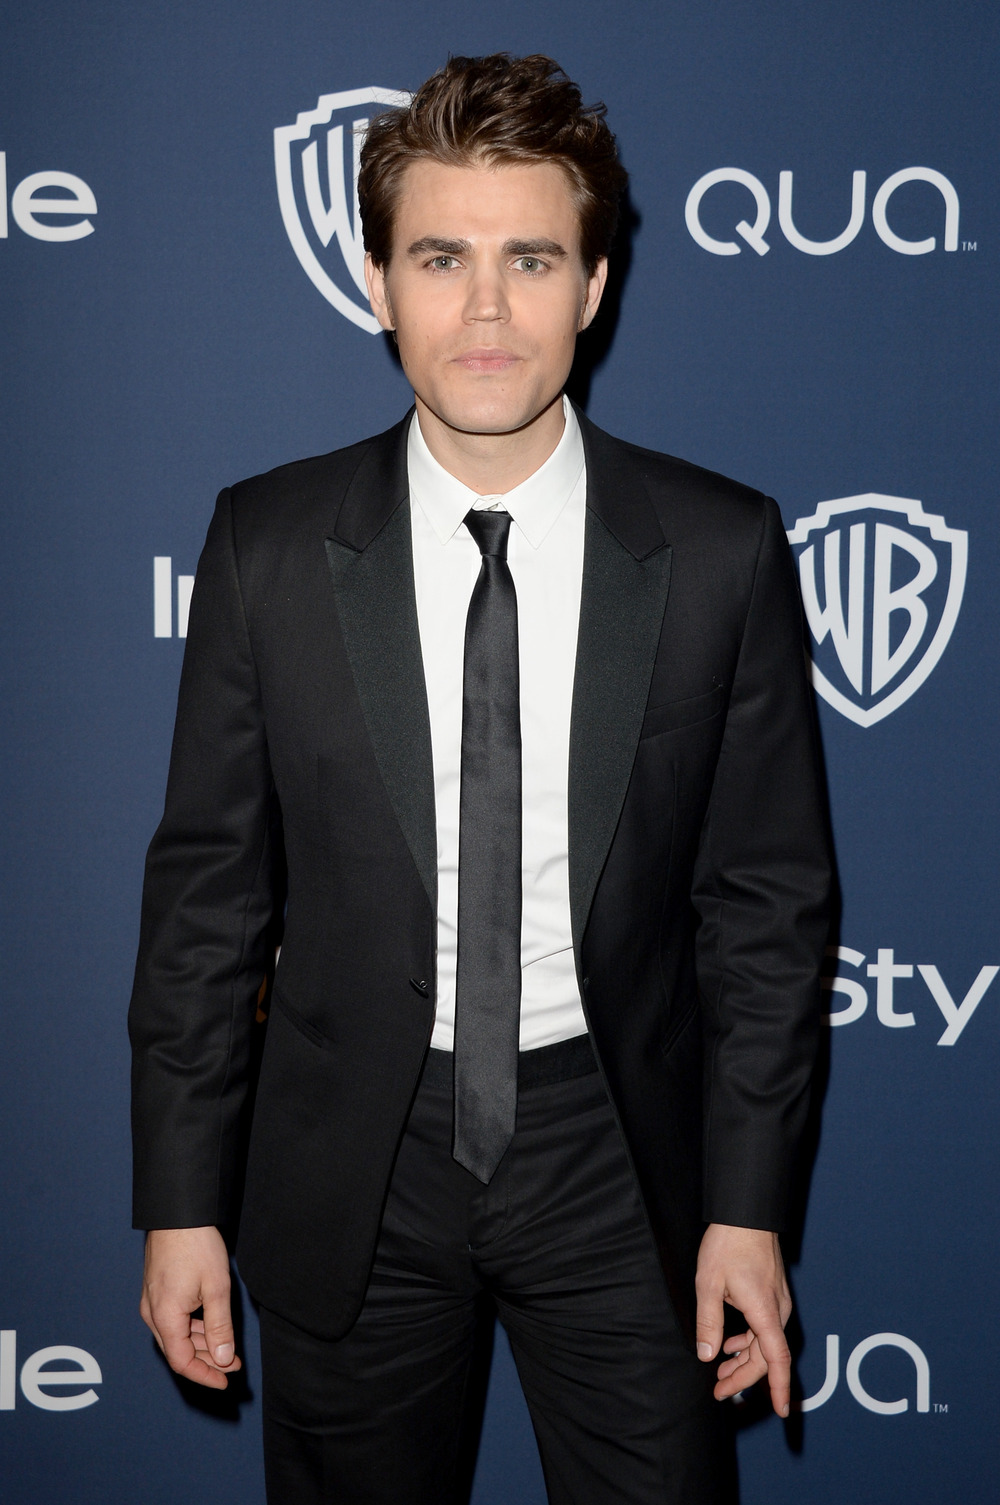 Vampire Diaries Star Paul Wesley Confirms He's in a Relationship With [SPOILER]!